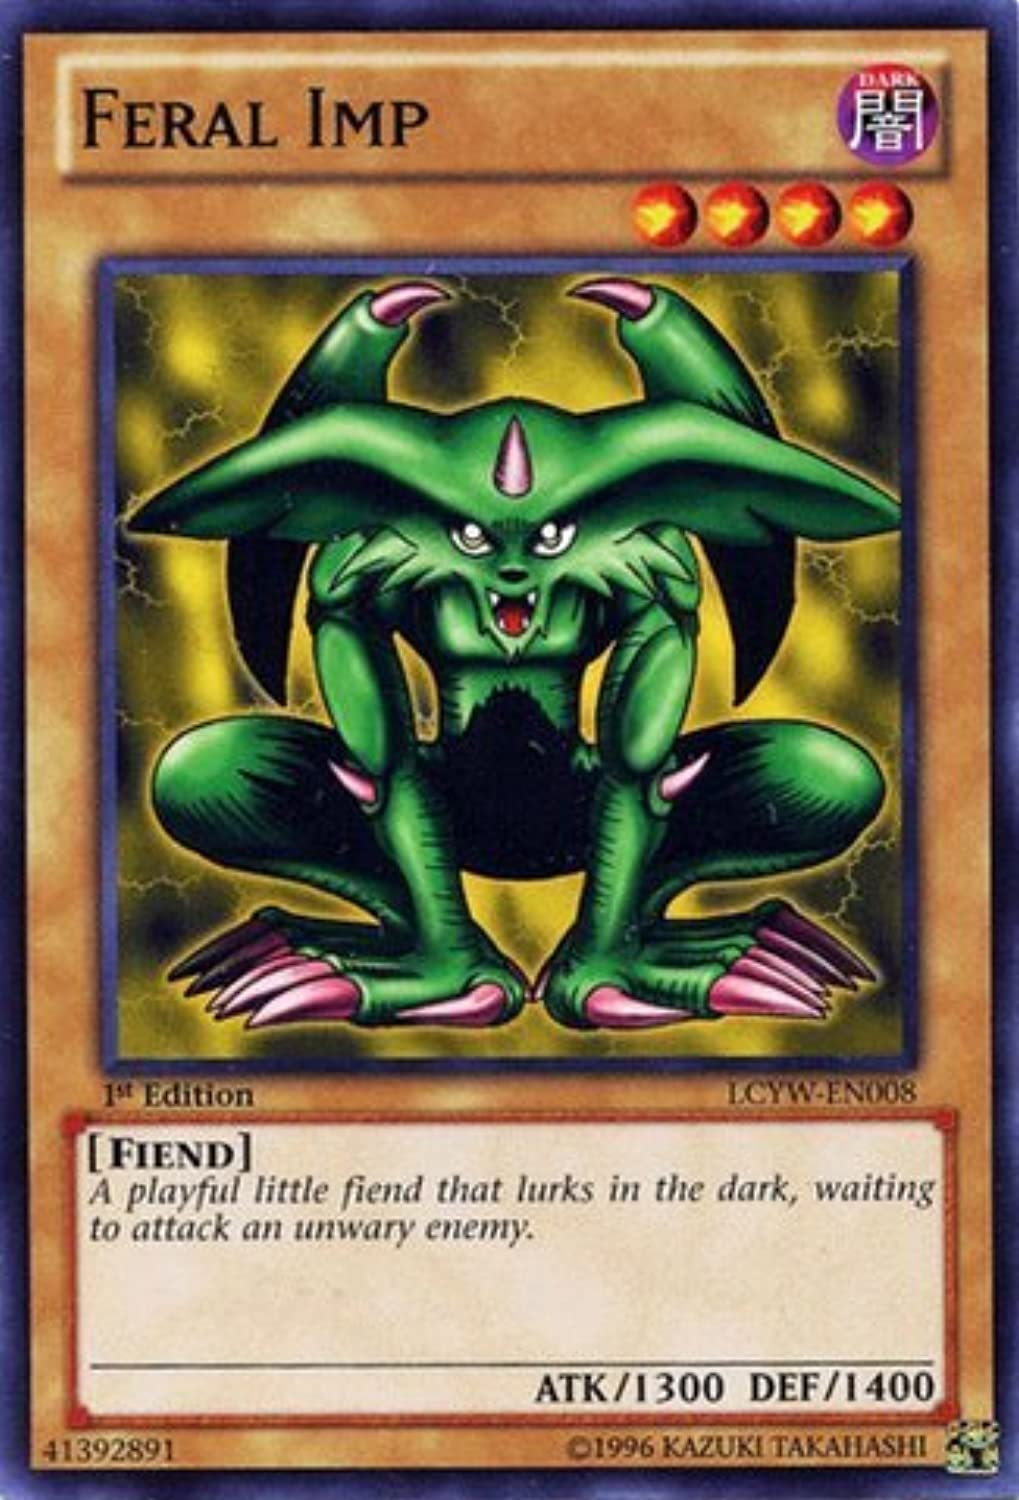 YuGiOh   Feral Imp (LCYWEN008)  Legendary Collection 3  Yugi's World  1st Edition  Common by YuGiOh